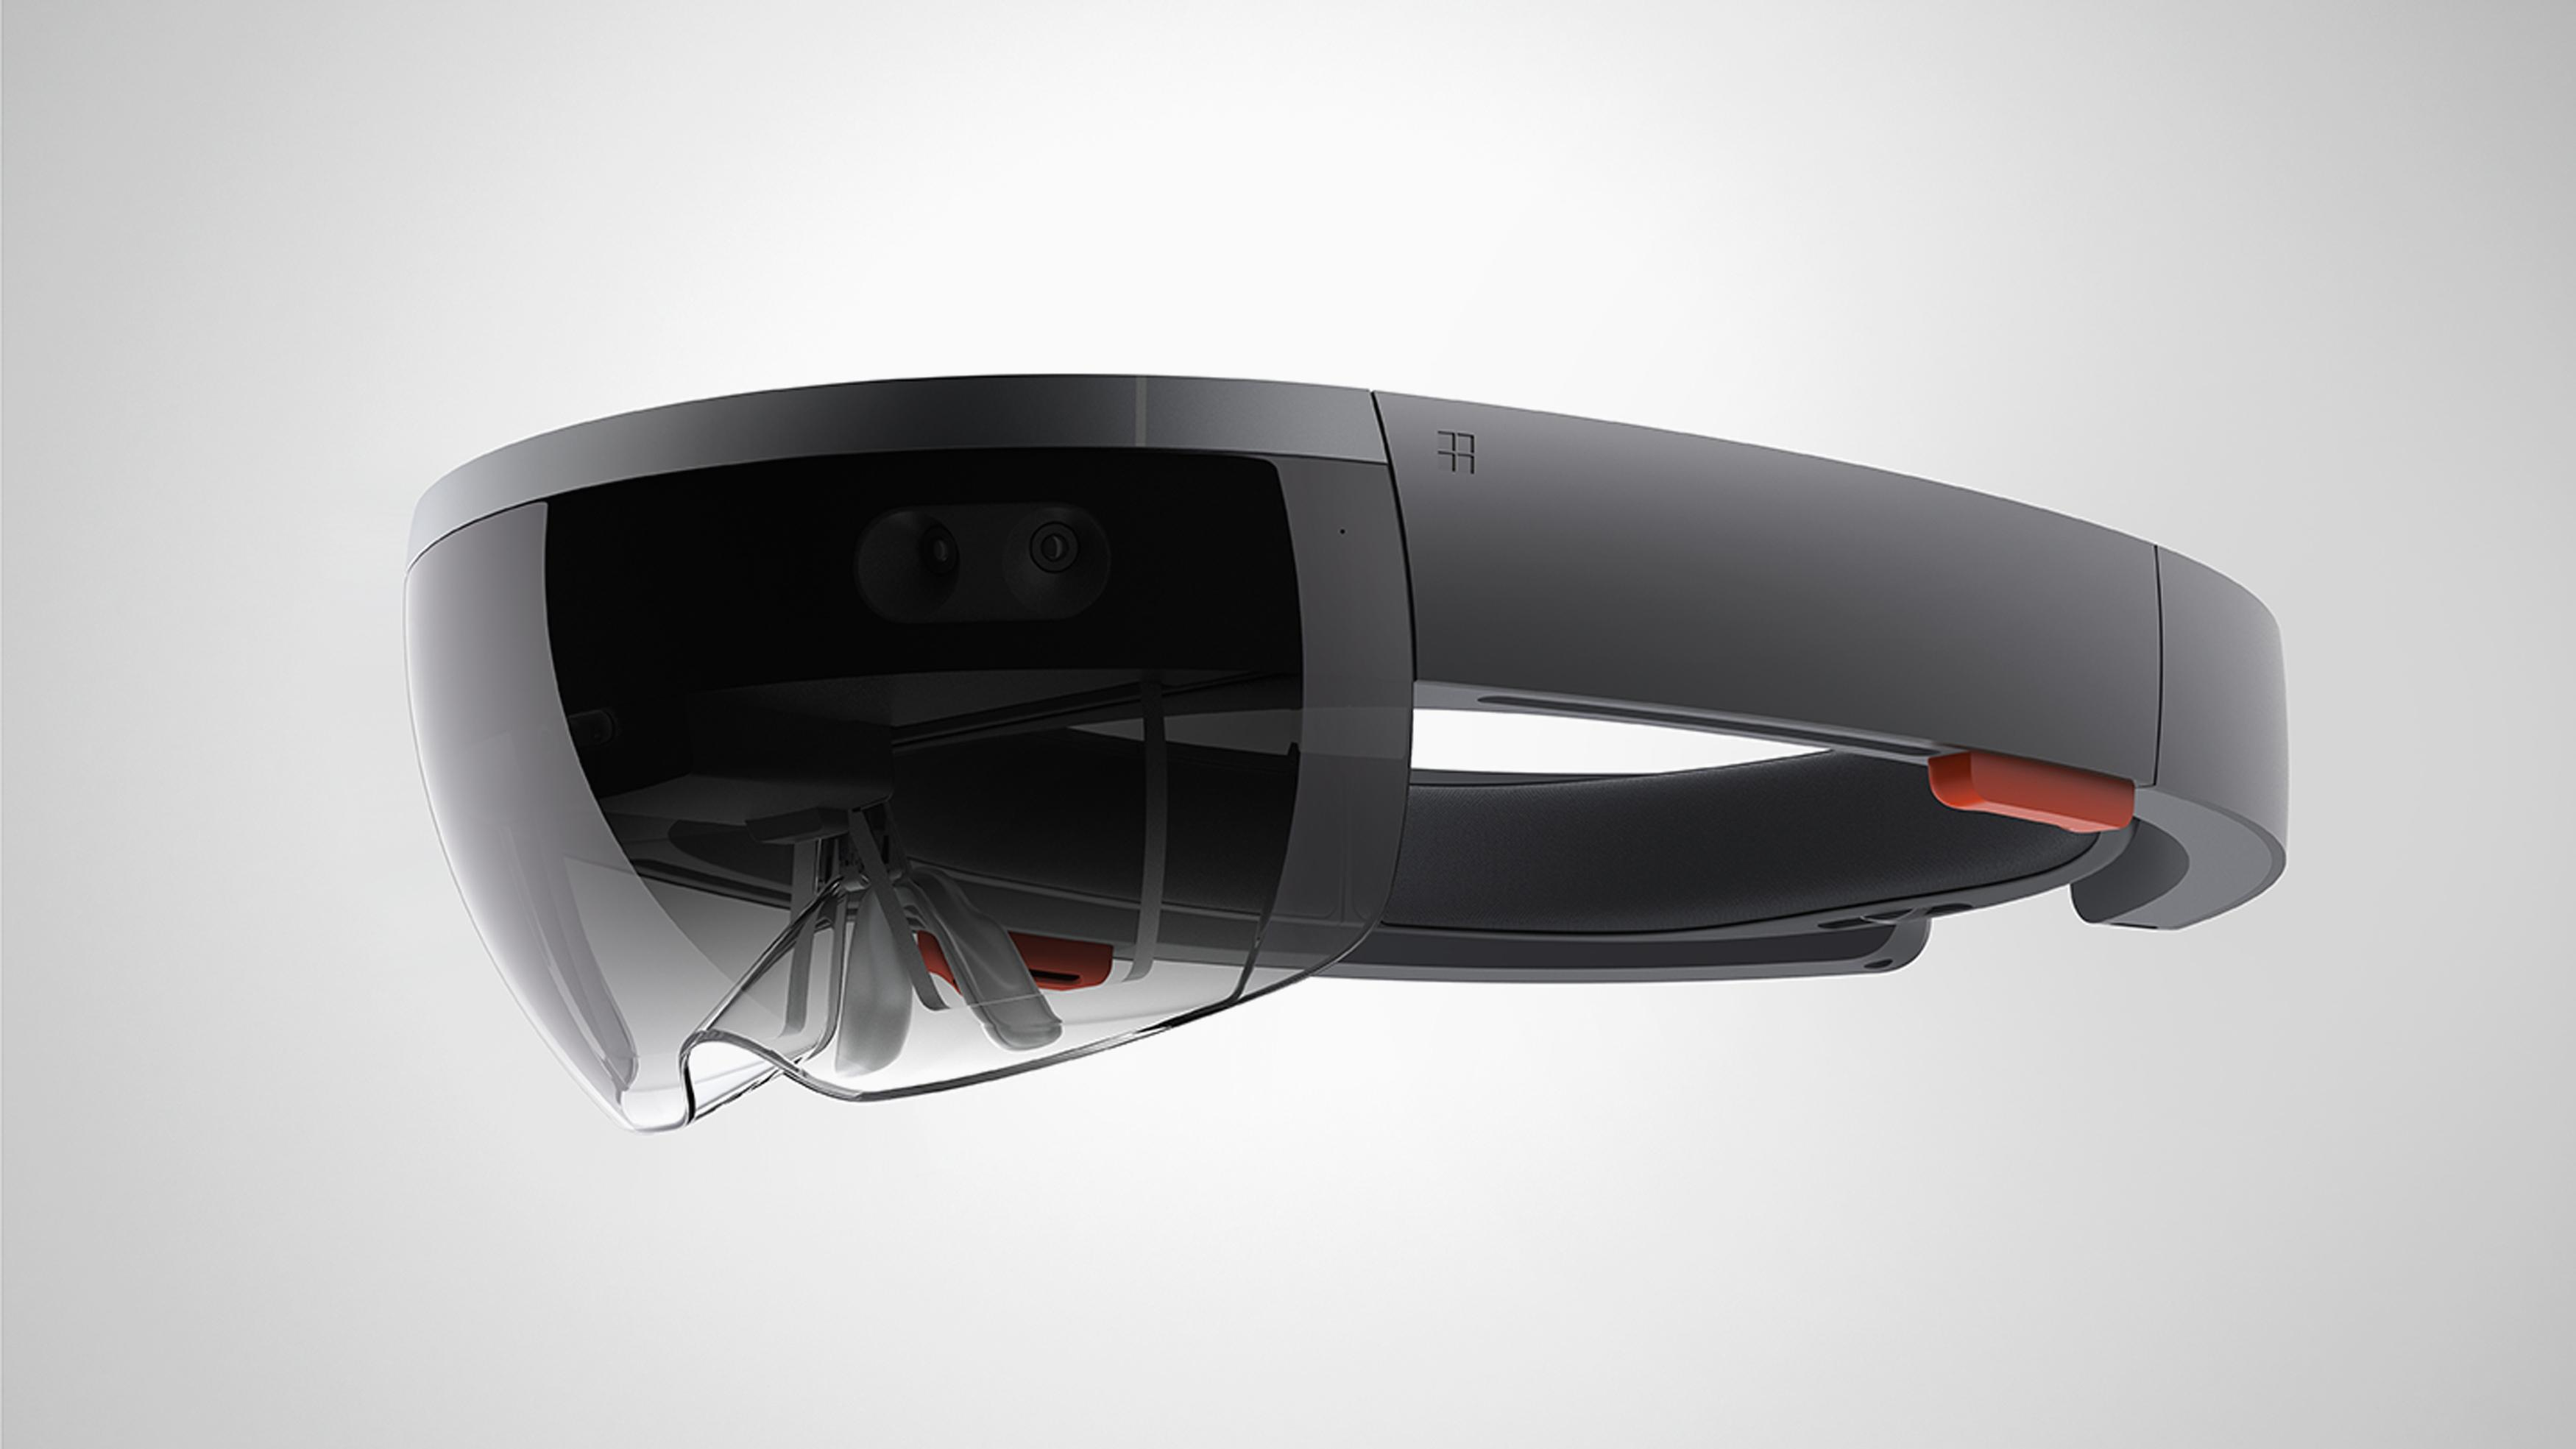 Introducing the first ever Microsoft HoloLens